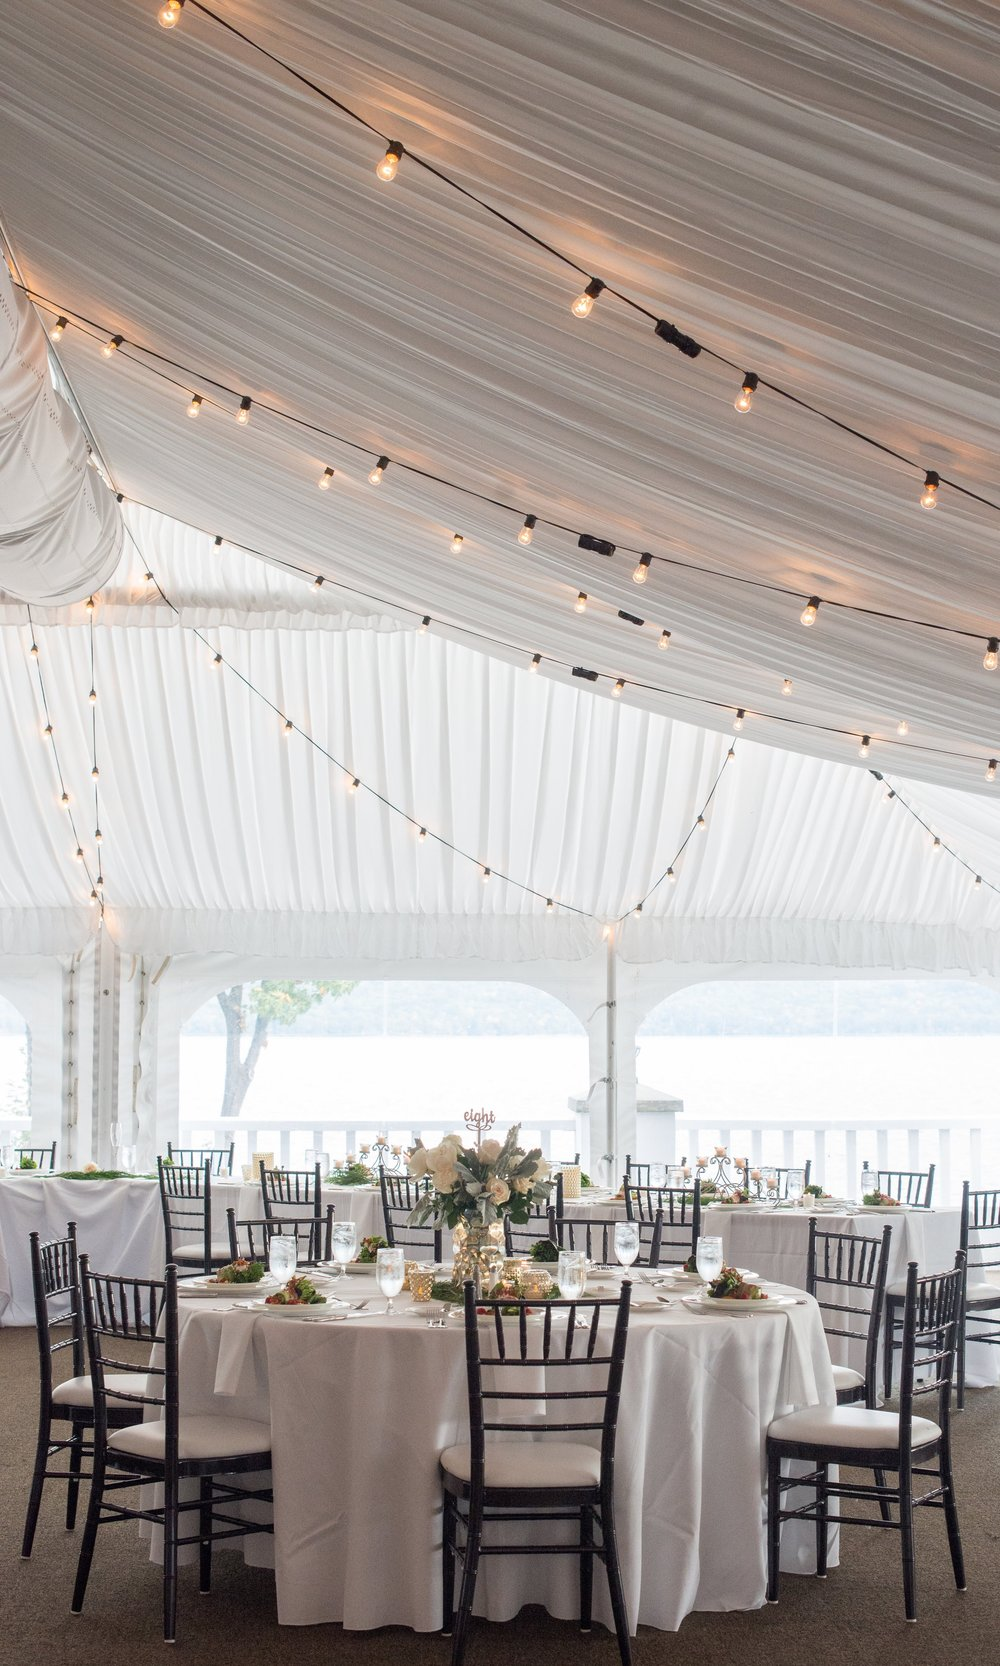 the-reception-tent-wedding-lights-sagamore-resort-lake-george-ny-wedding-ym-photography